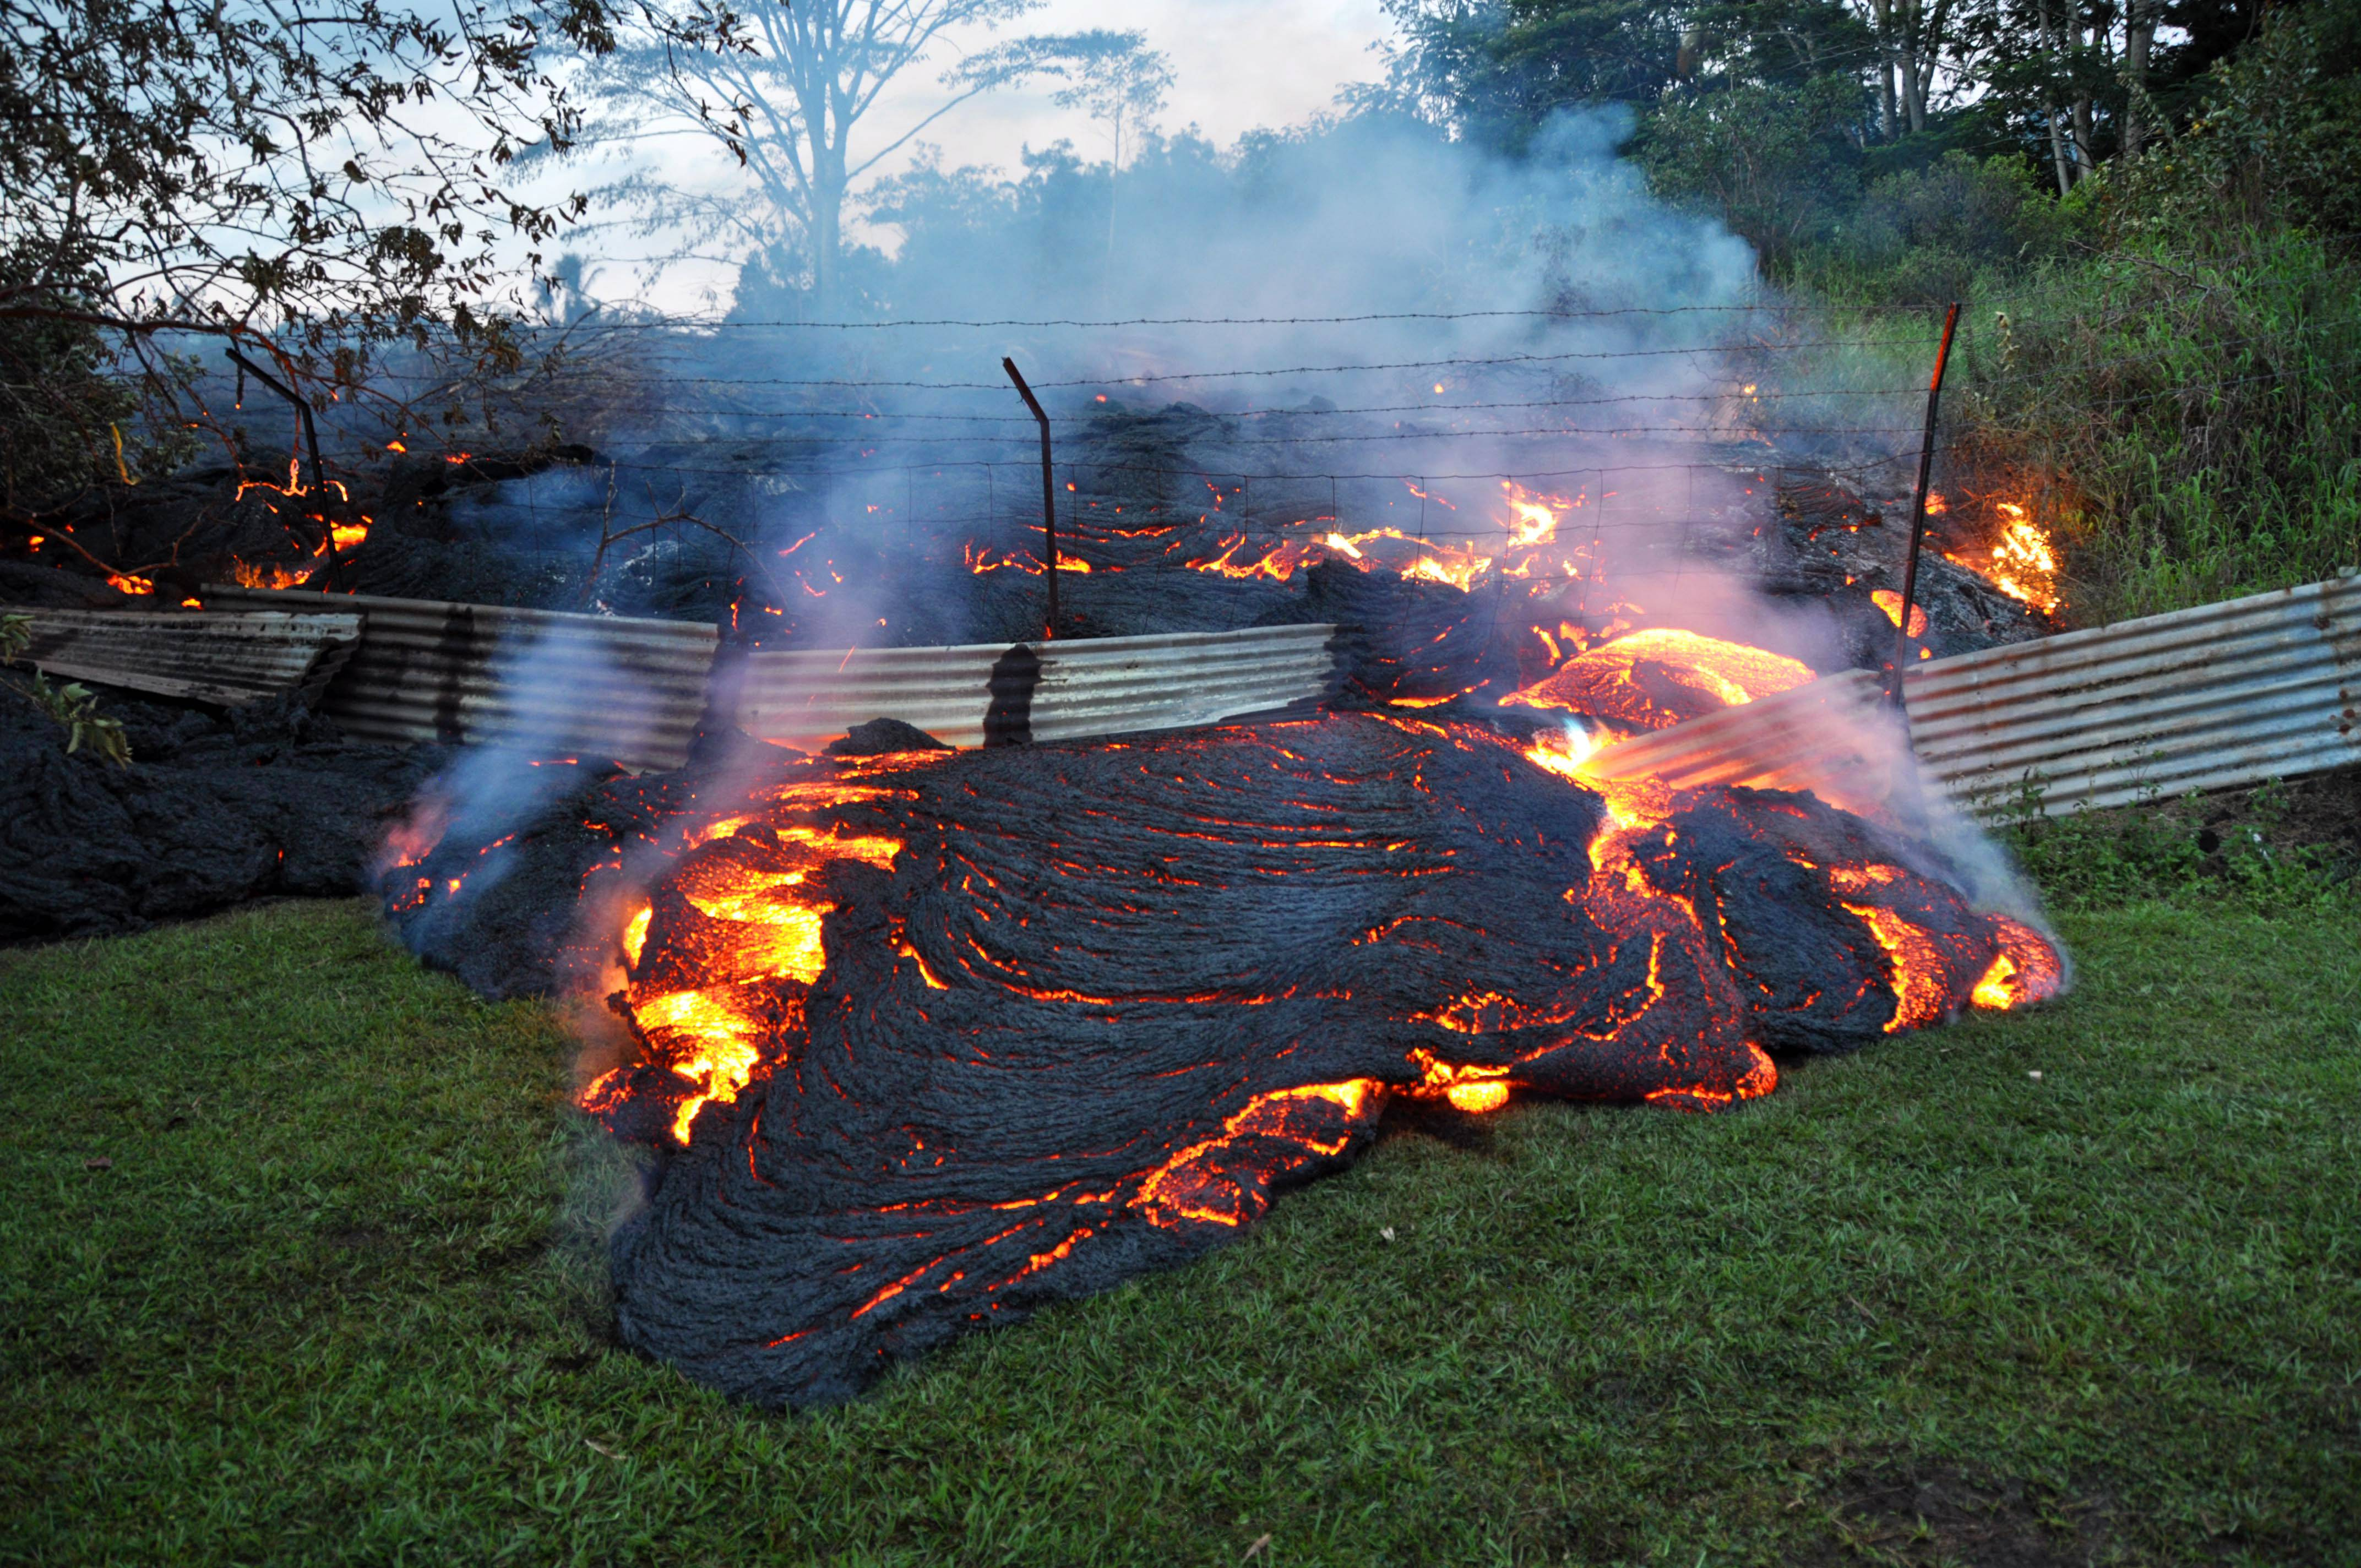 Rain helps with smoke emanating from Hawaii lava